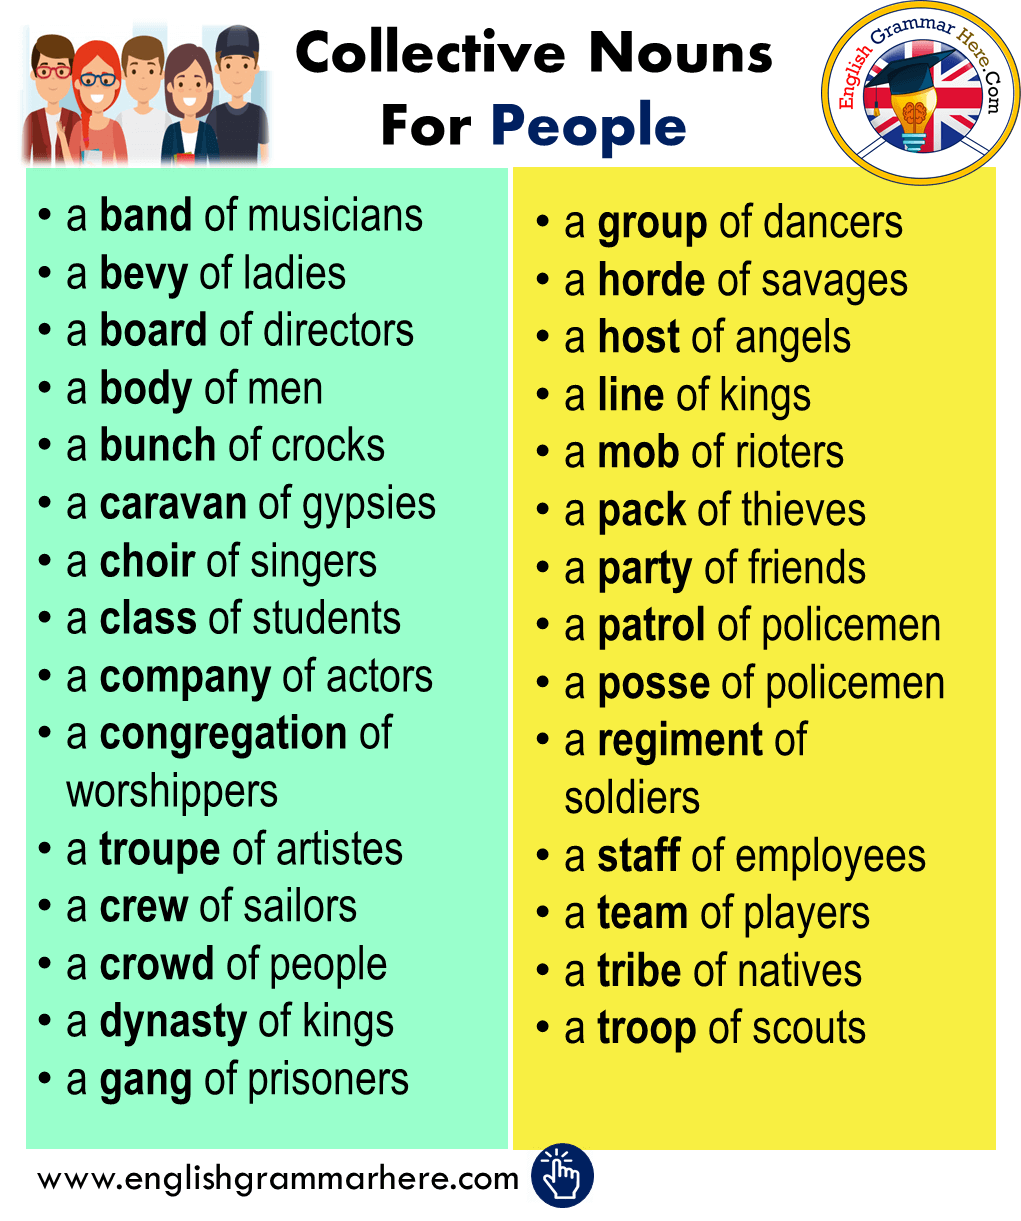 Collective Nouns For People in English